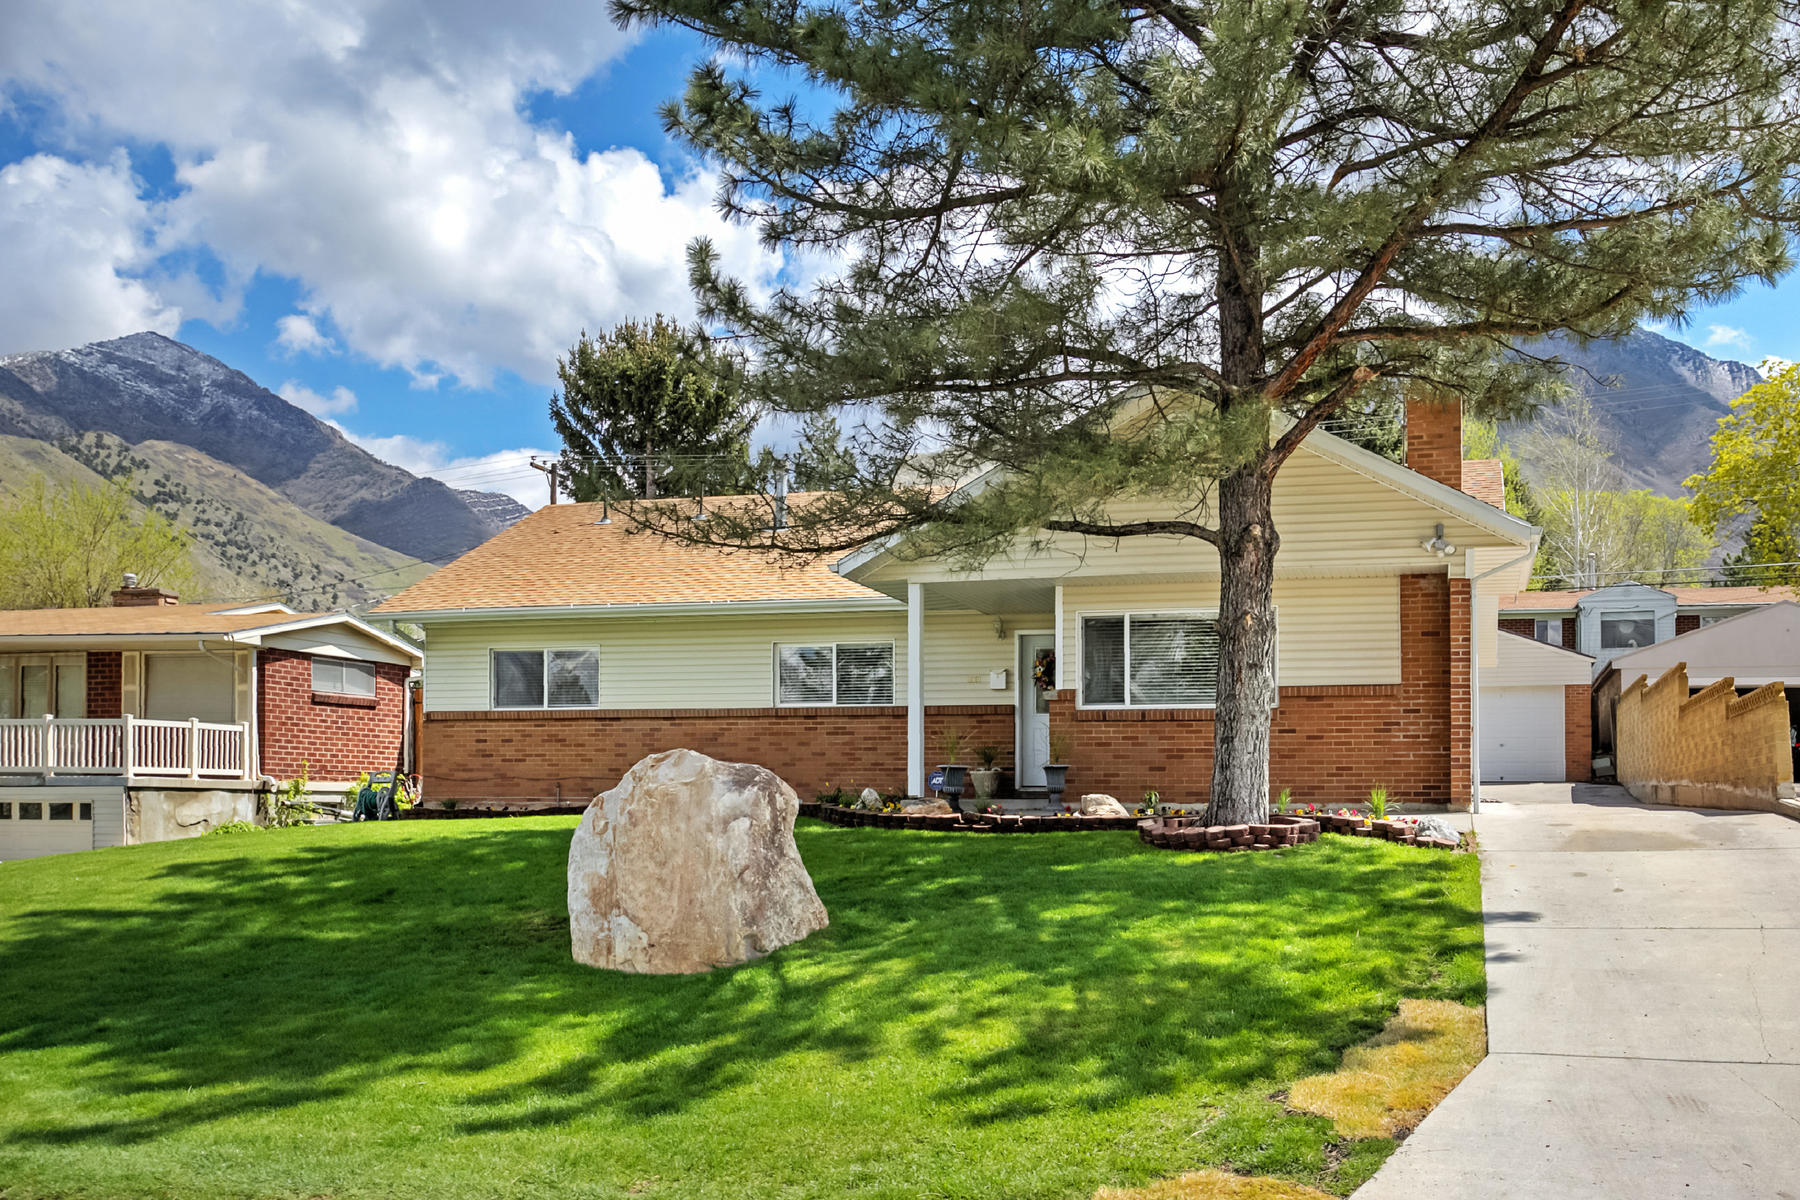 Single Family Home for Sale at Rare Olympus Cove 6 Bedroom Rambler 4081 S Achilles Dr Salt Lake City, Utah 84124 United States